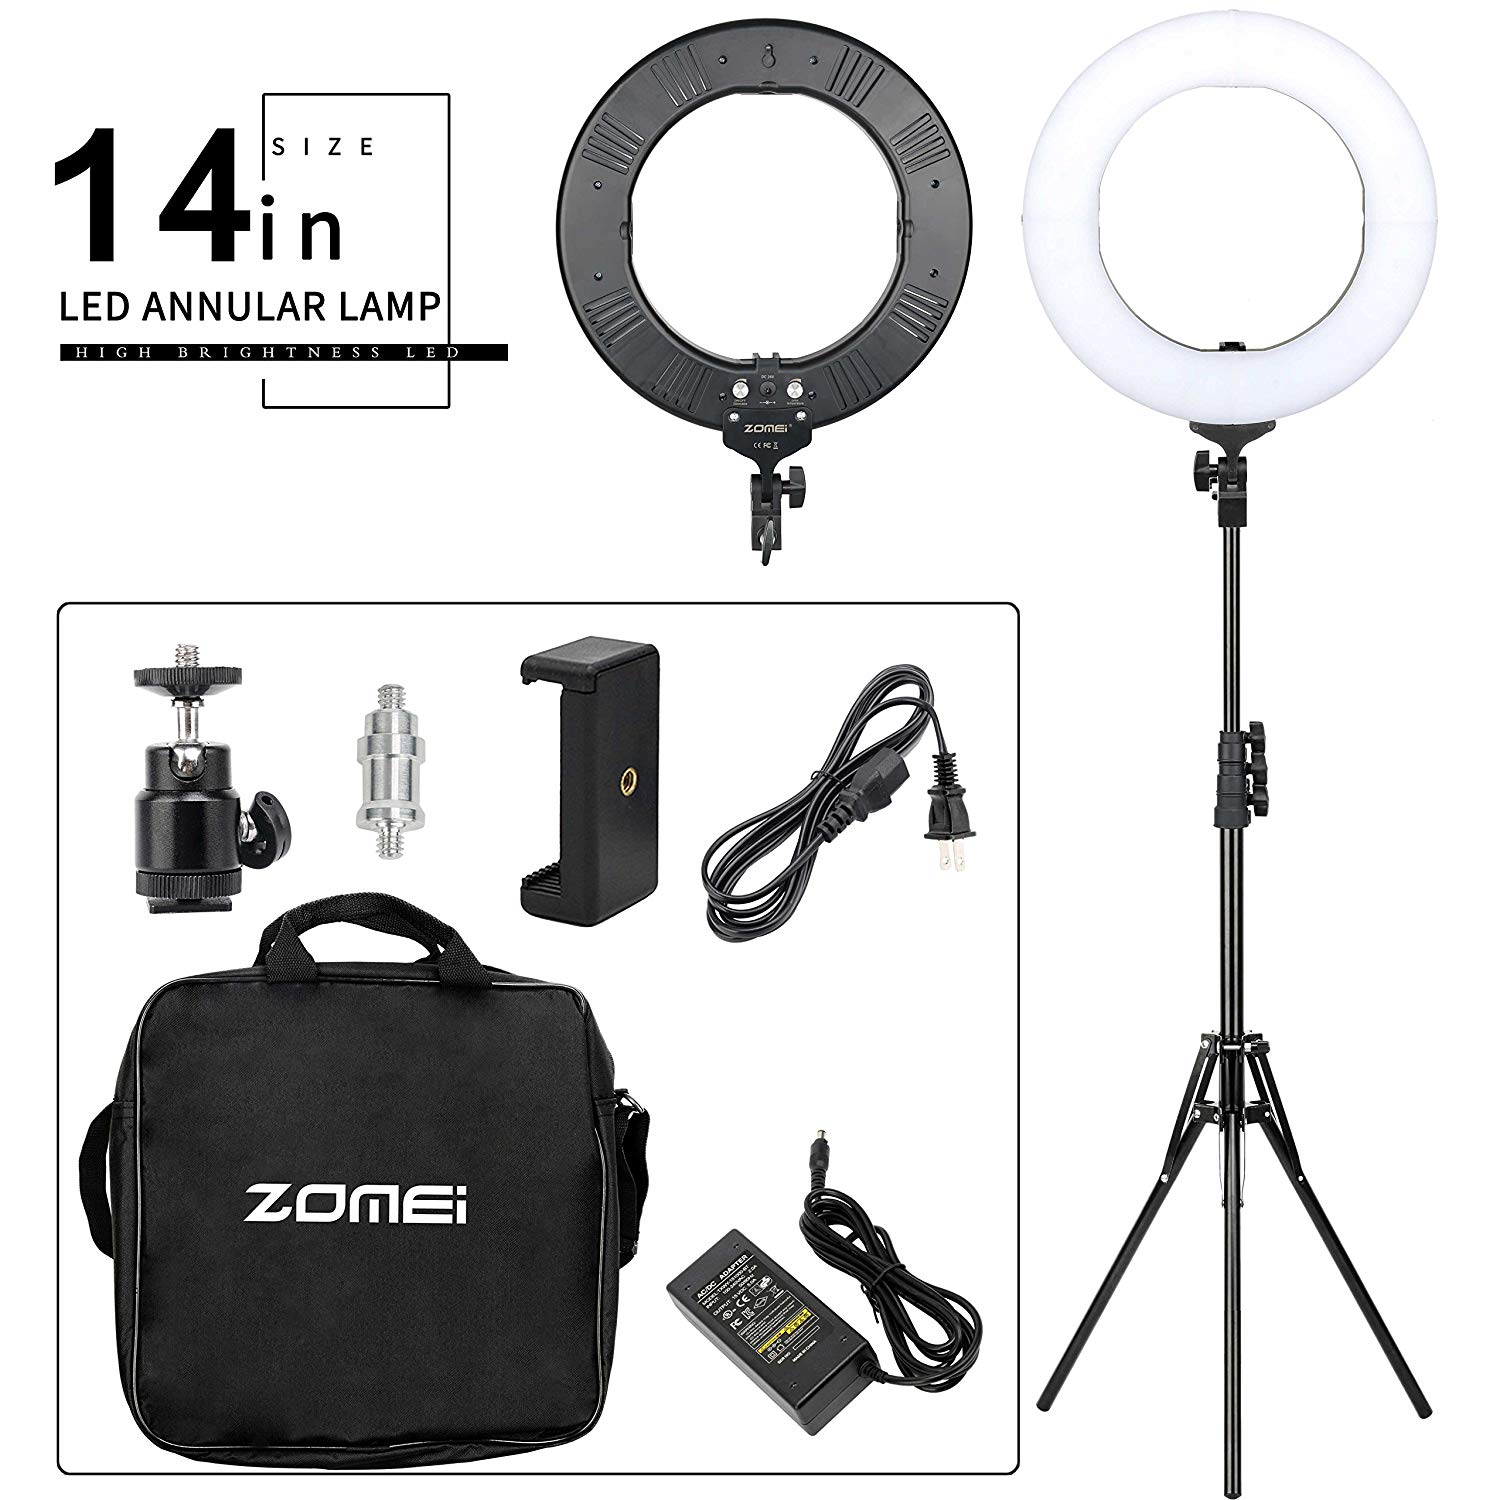 ZOMEI 14-inch Bi-Color Stepless Dimmable LED Ring Light Kit with Stand 41W 5500K Output Hot Shoe Adapter for Outdoor Shooting Live Streaming Make up and YouTube Video